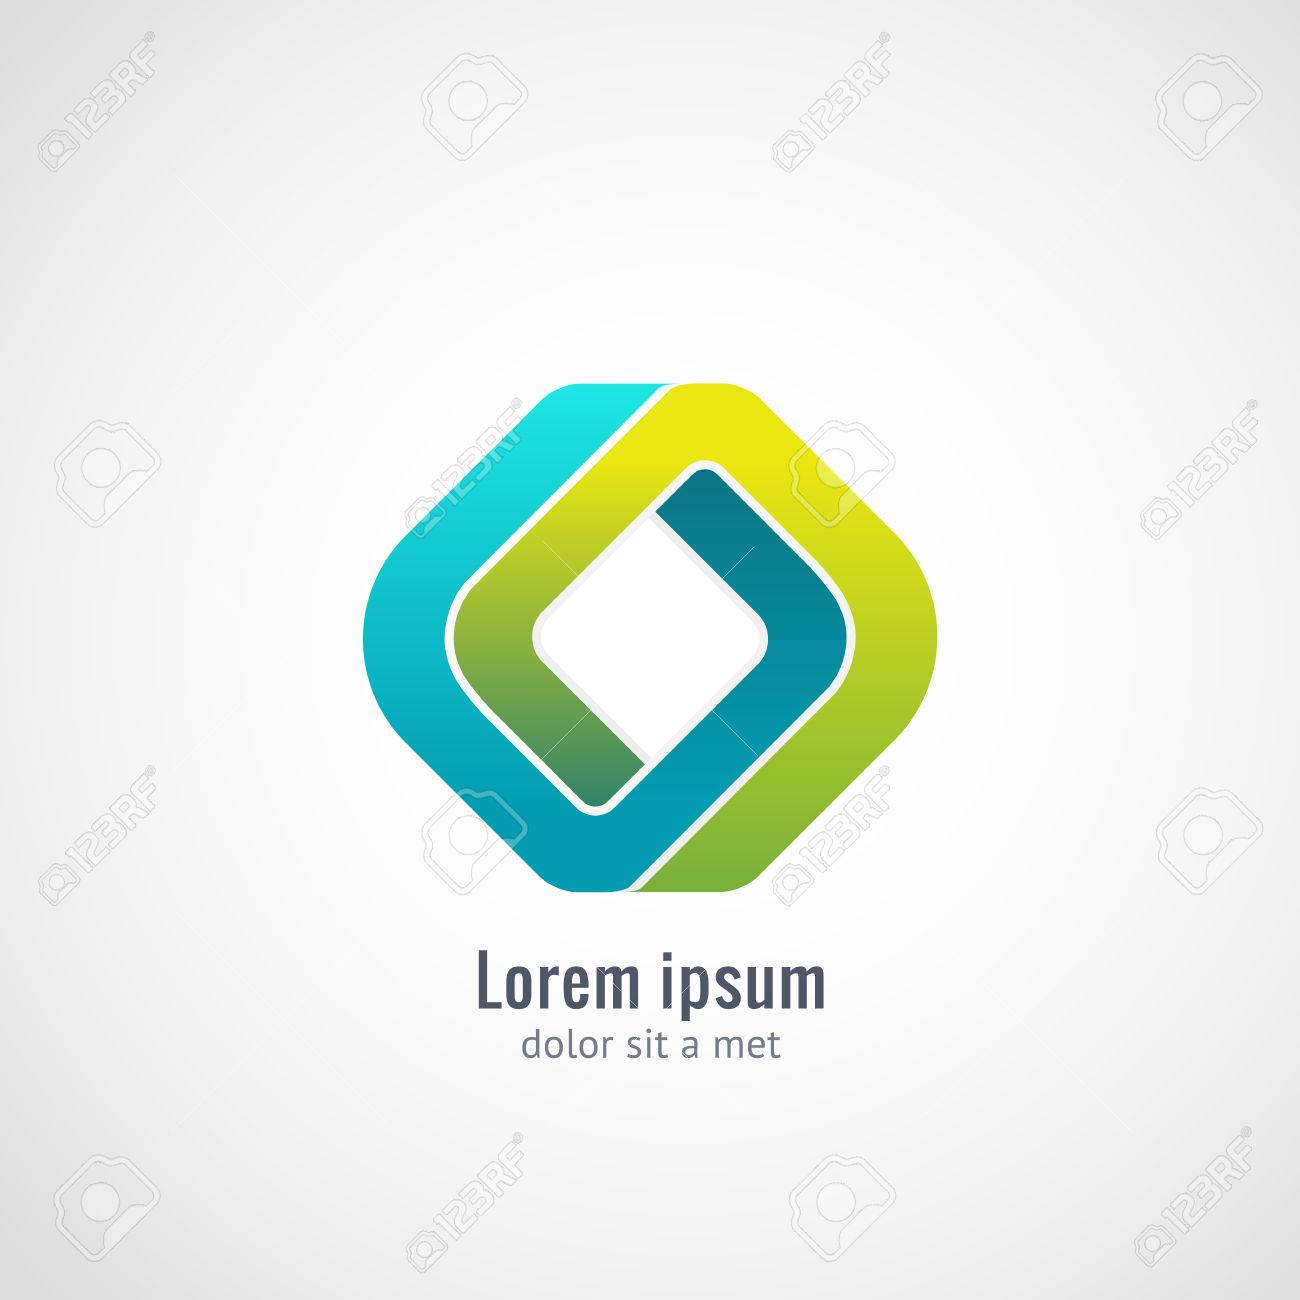 Vector graphic design business logo - Corporate Media Technology Ecology Styles Vector Logo Design Template Infinite Looped Shape